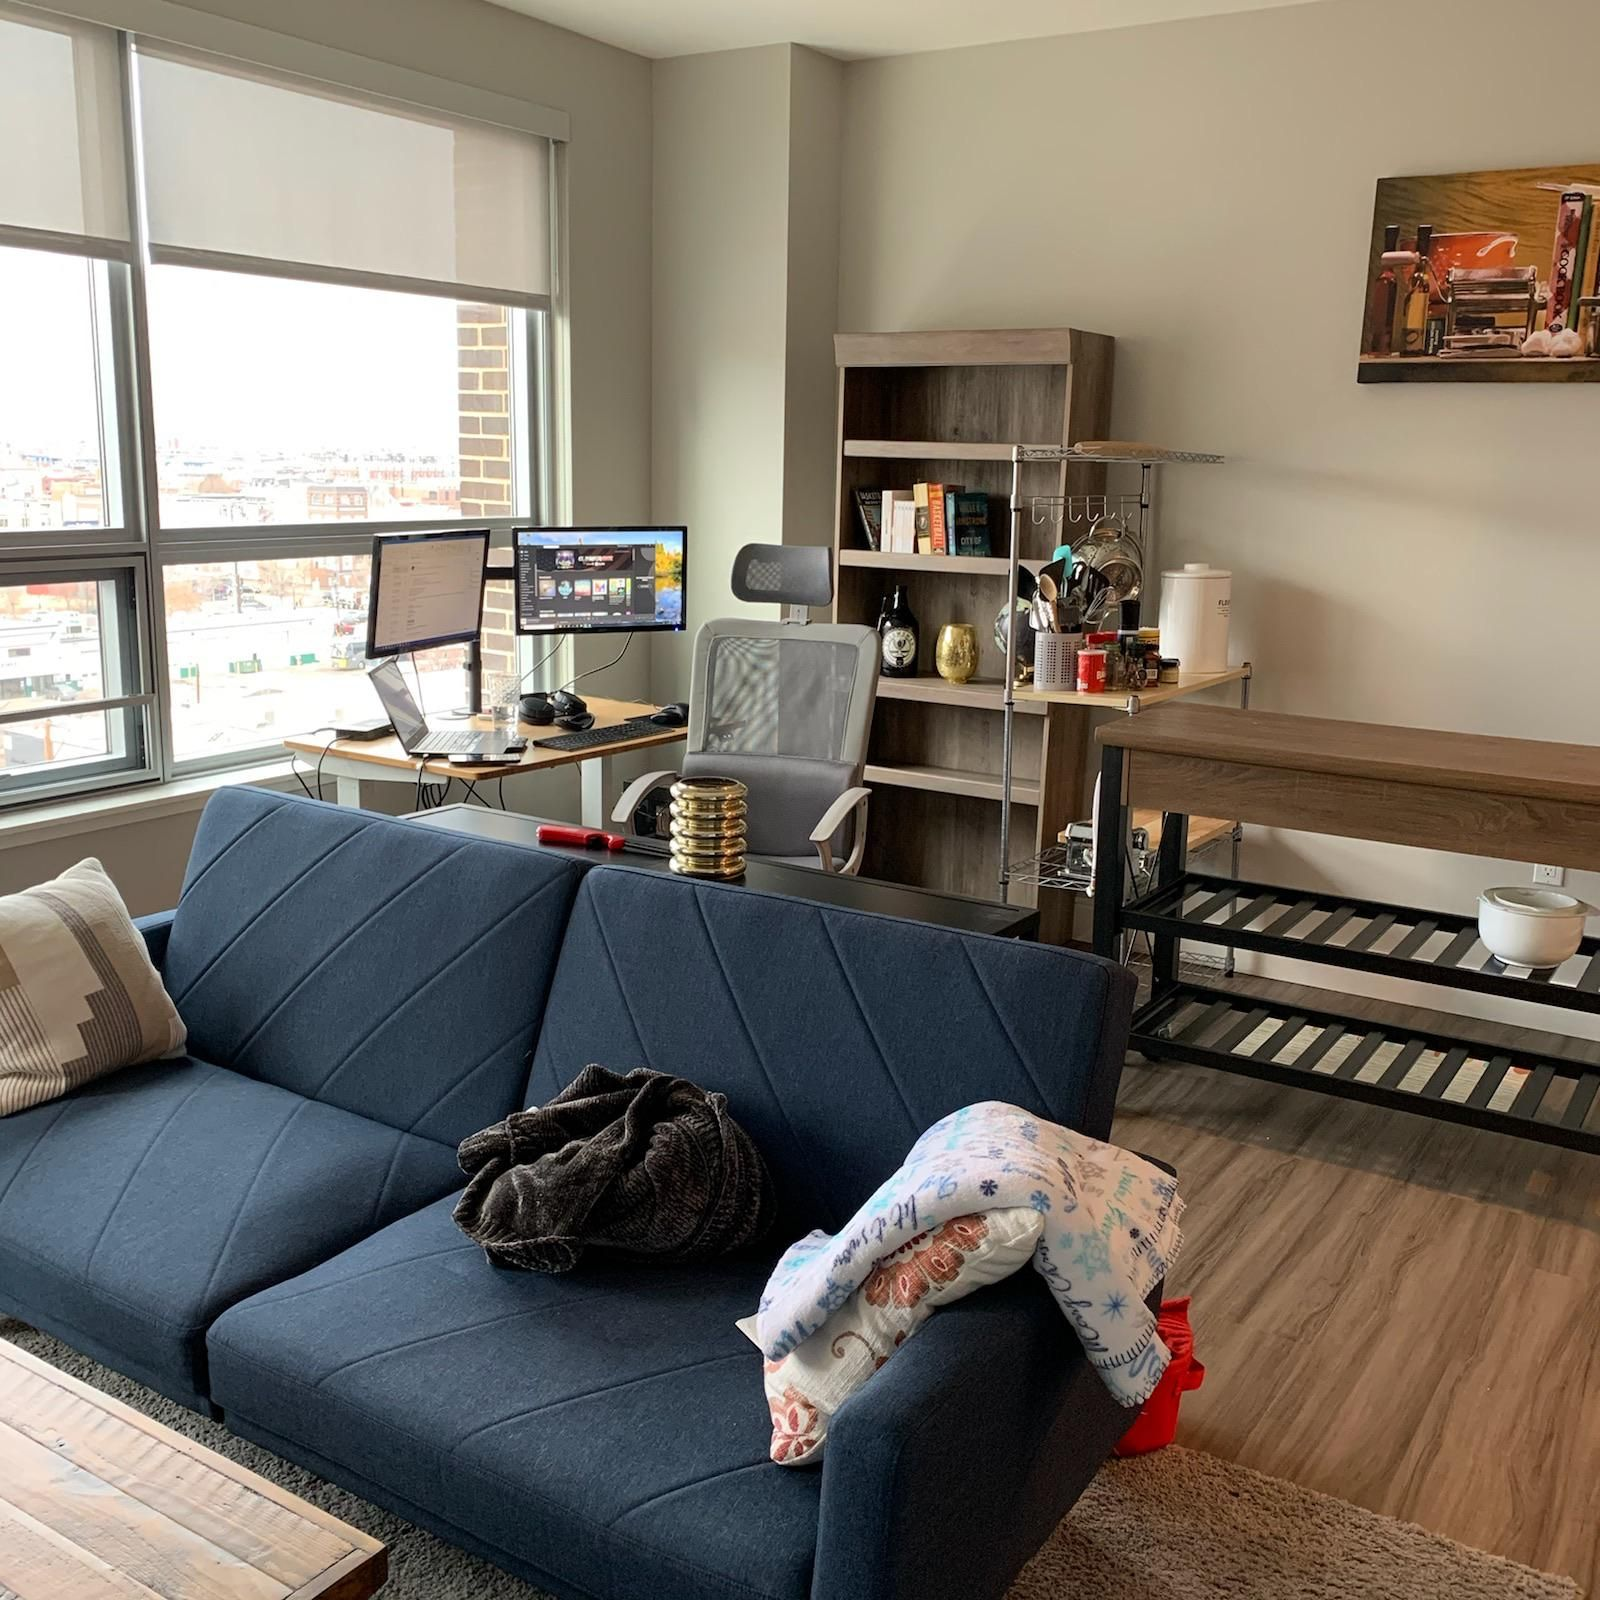 This Is My Apartment There Are Many Like It But This One Is Mine Gloomy Day Here But Feeling Very Appreciat In 2020 Mens Apartment Decor Living Spaces Apartment Decor